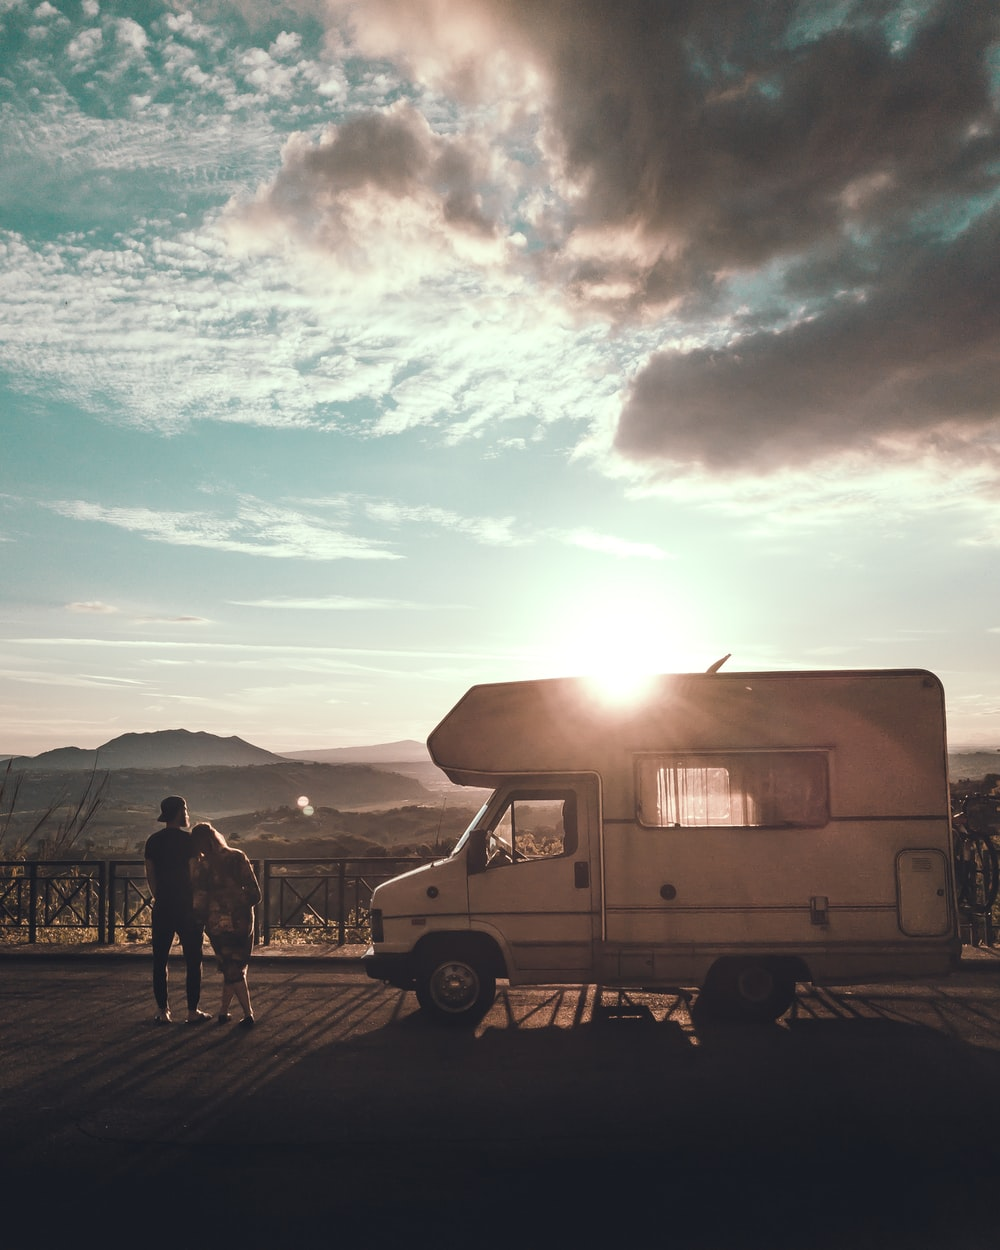 man and woman standing beside camper trailer on the street